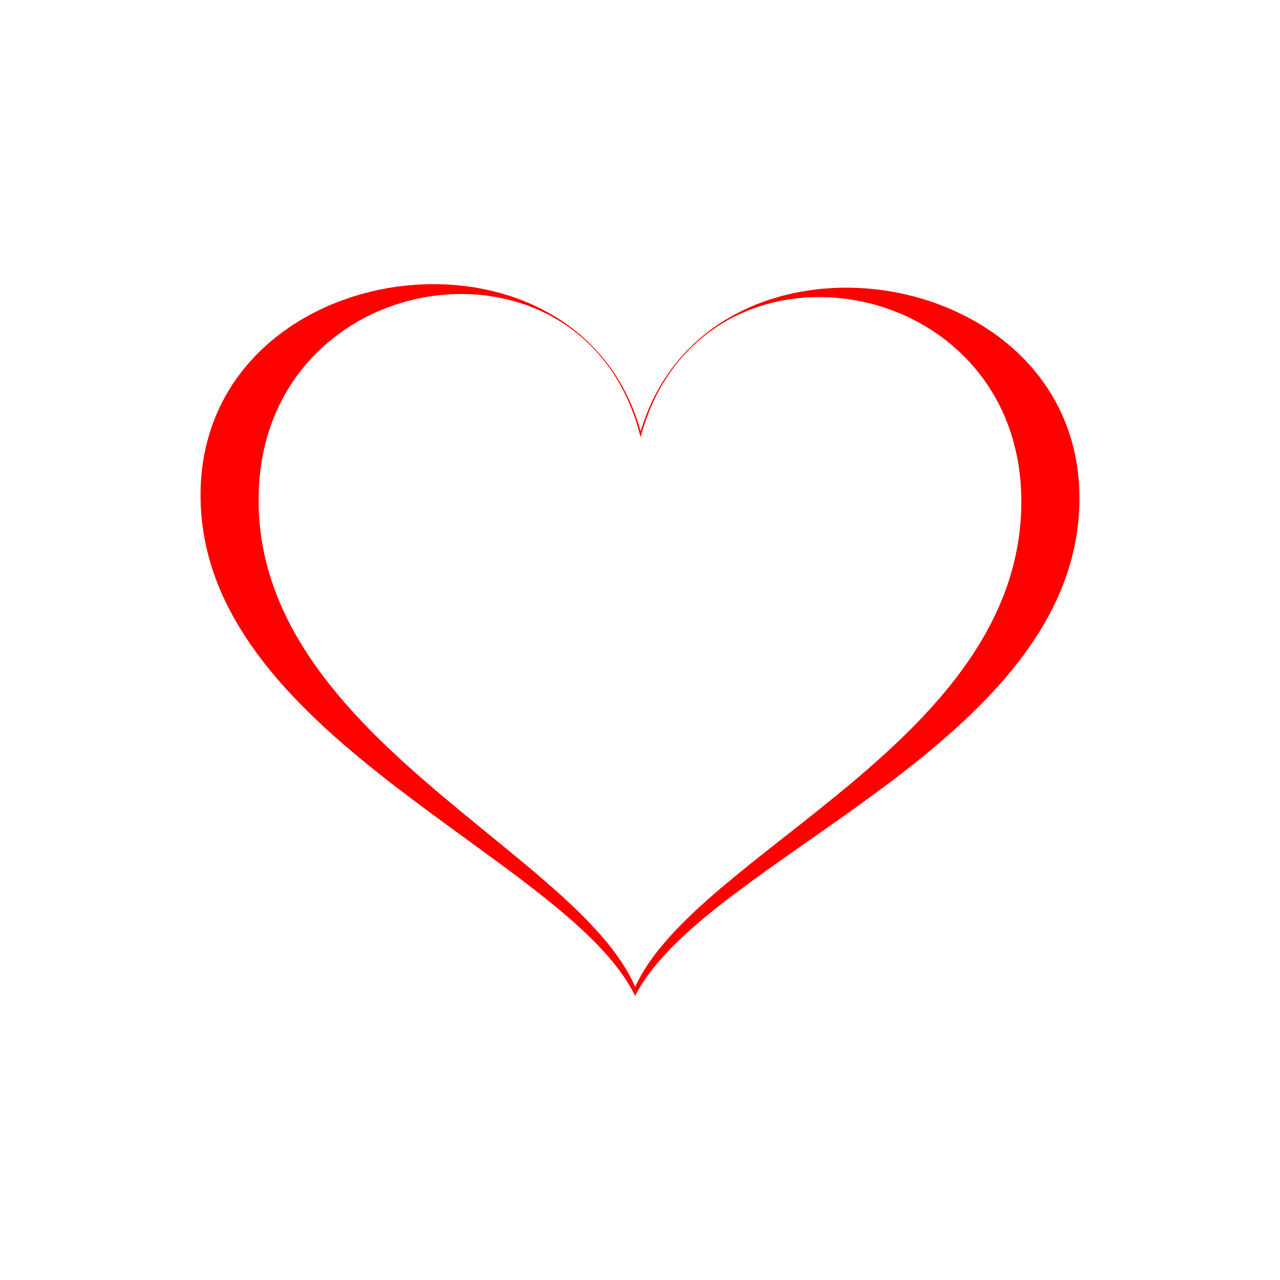 Love clipart icon, Love icon Transparent FREE for download.